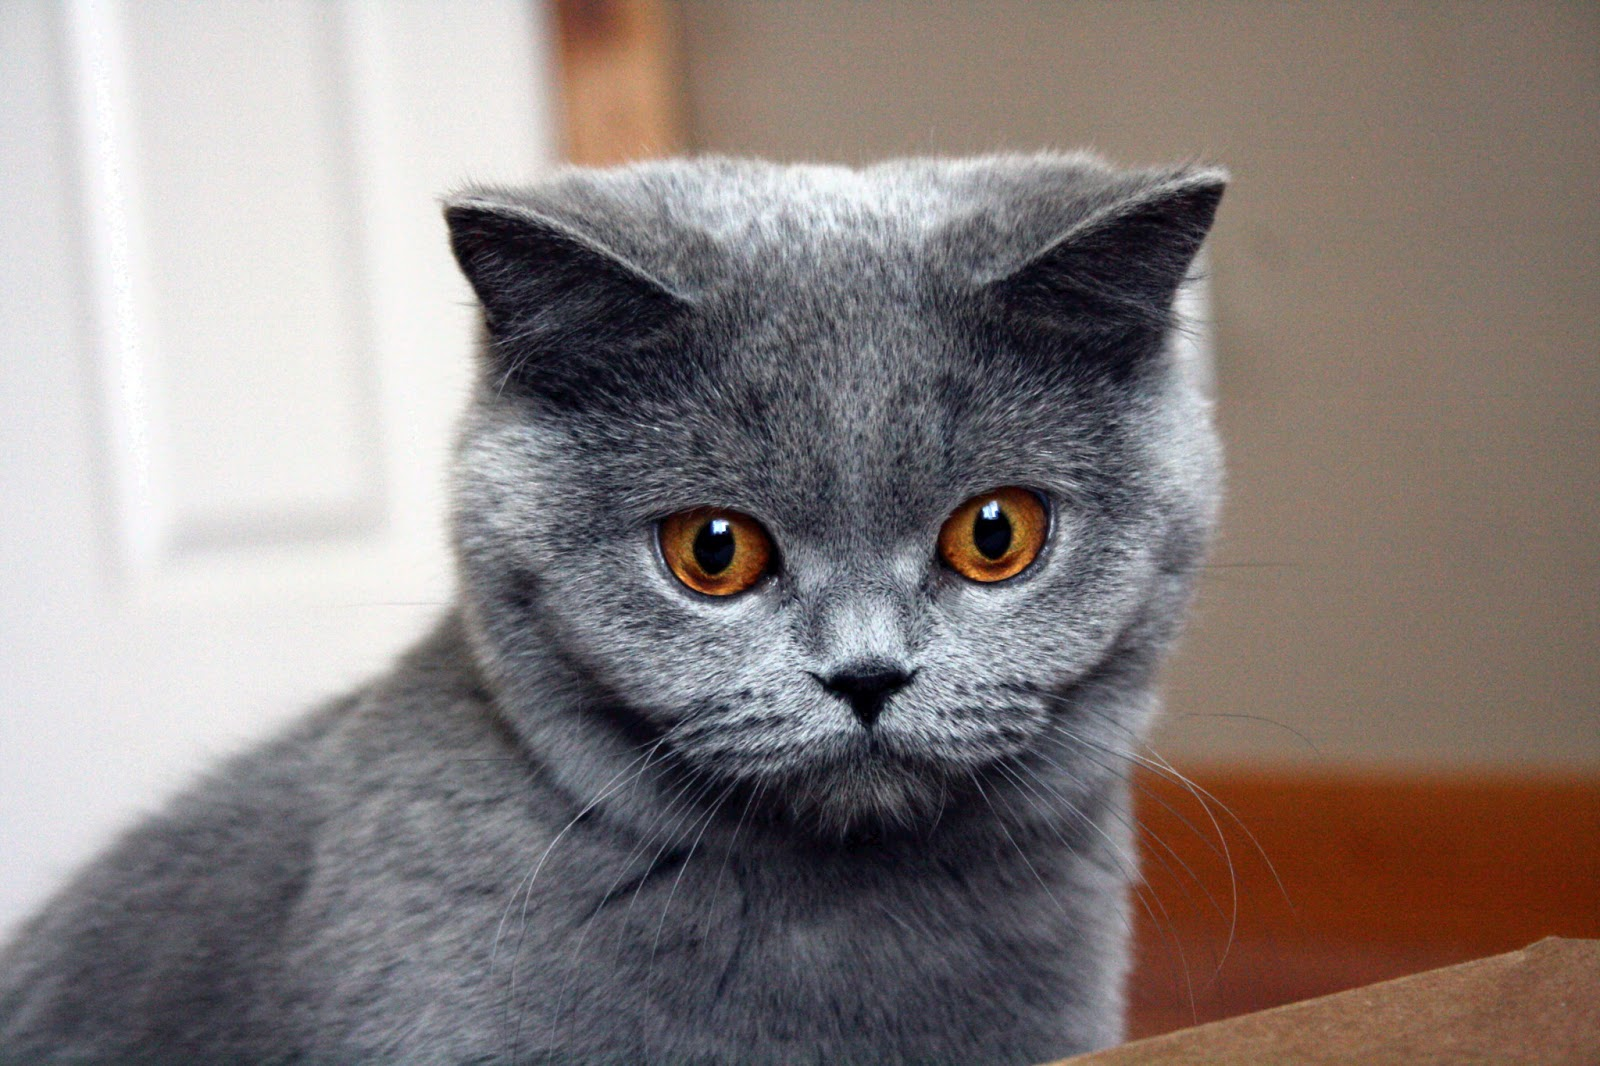 British Shorthair Kittens | The House of Meow